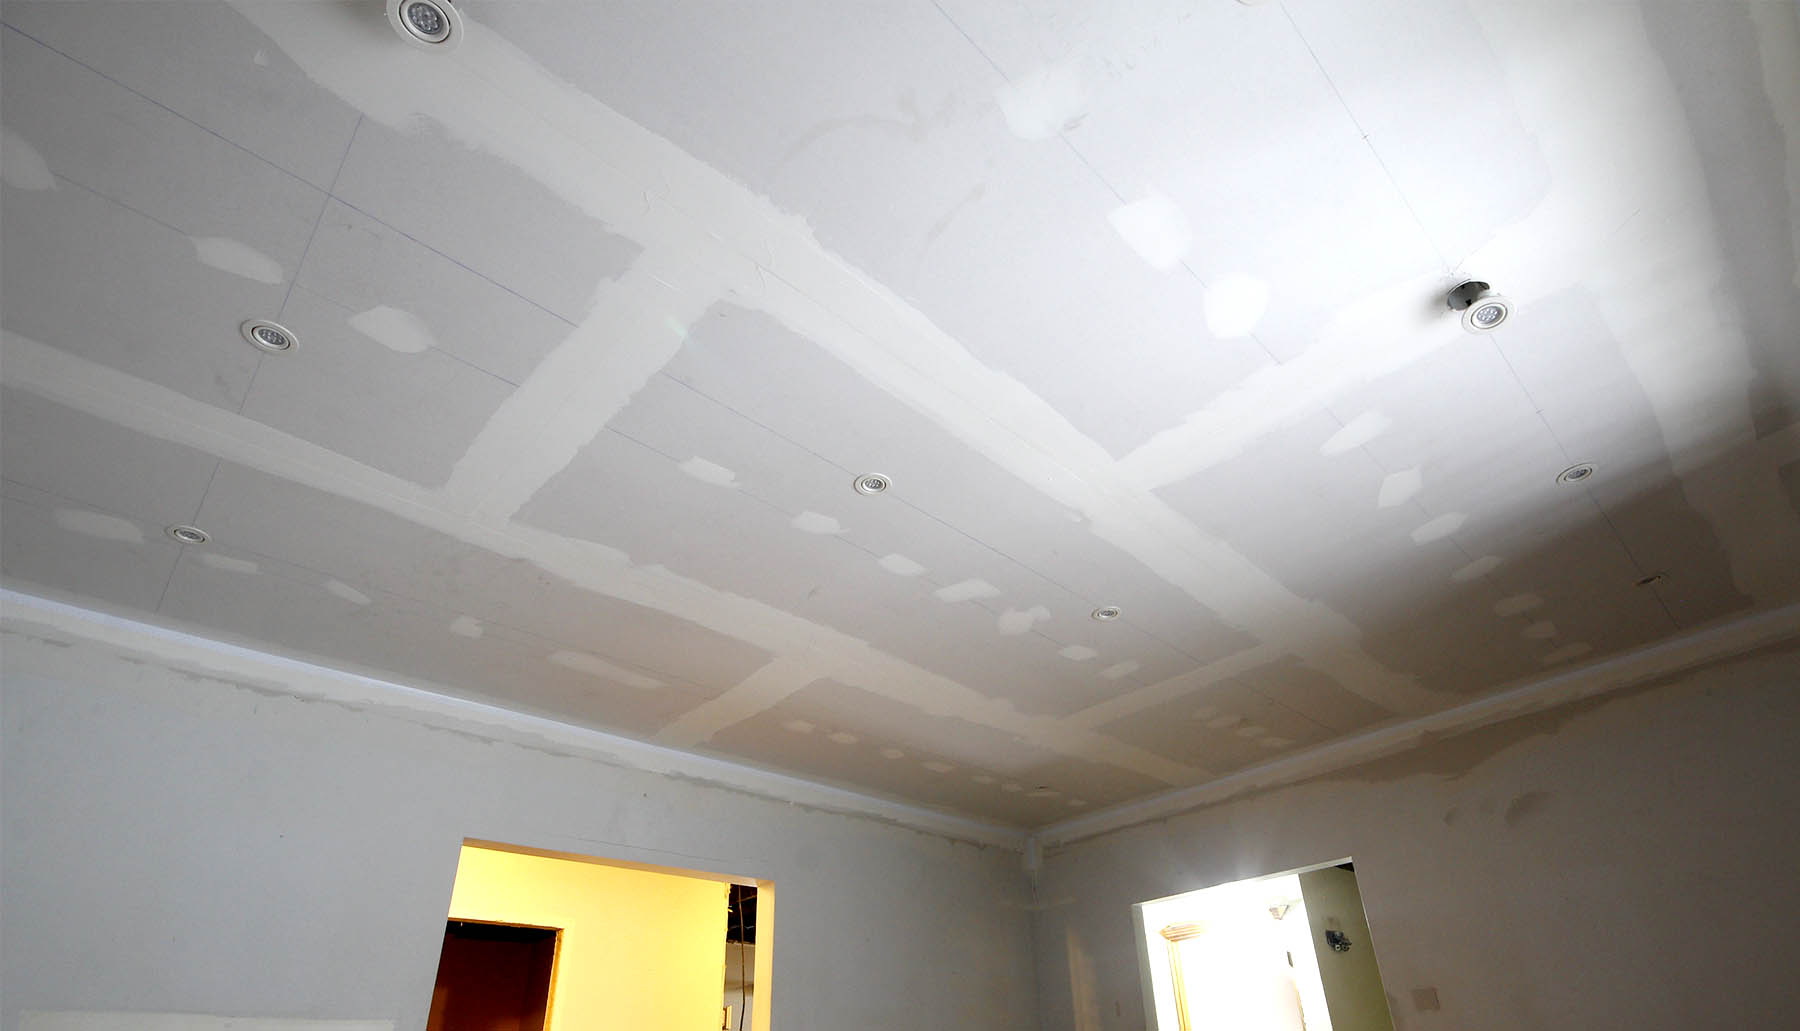 plaster and gyproc and framing walls services for renovation and construction in and around Montreal, Quebec.